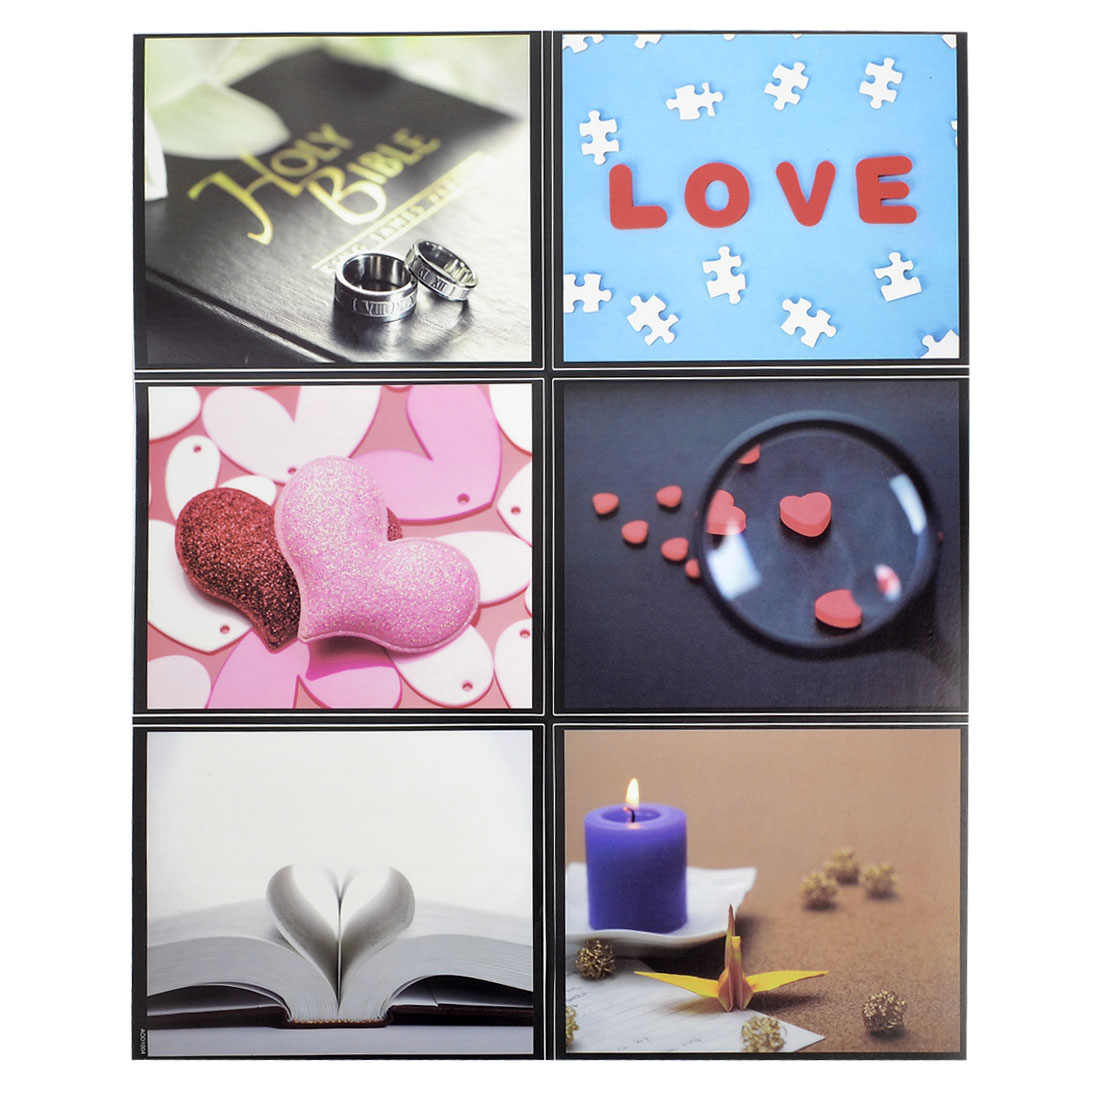 House Wall Ceramic Tiles Sticker Hearted Pattern Home Mural Decor